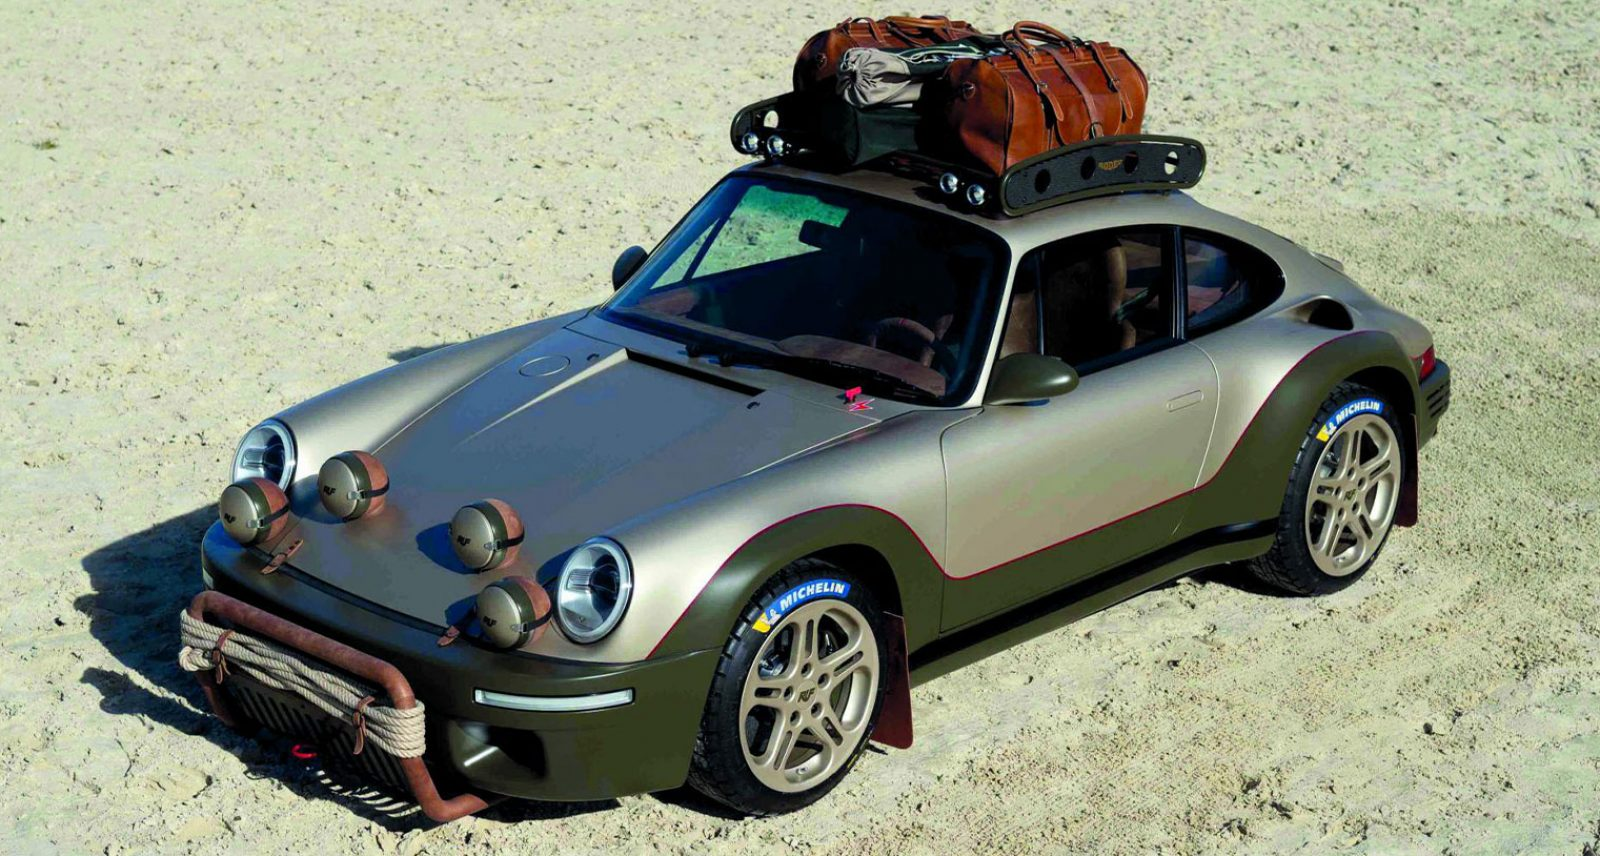 RUF'S Rodeo Concept Is the Porsche-Inspired Off-Roader for Cool Cowboys